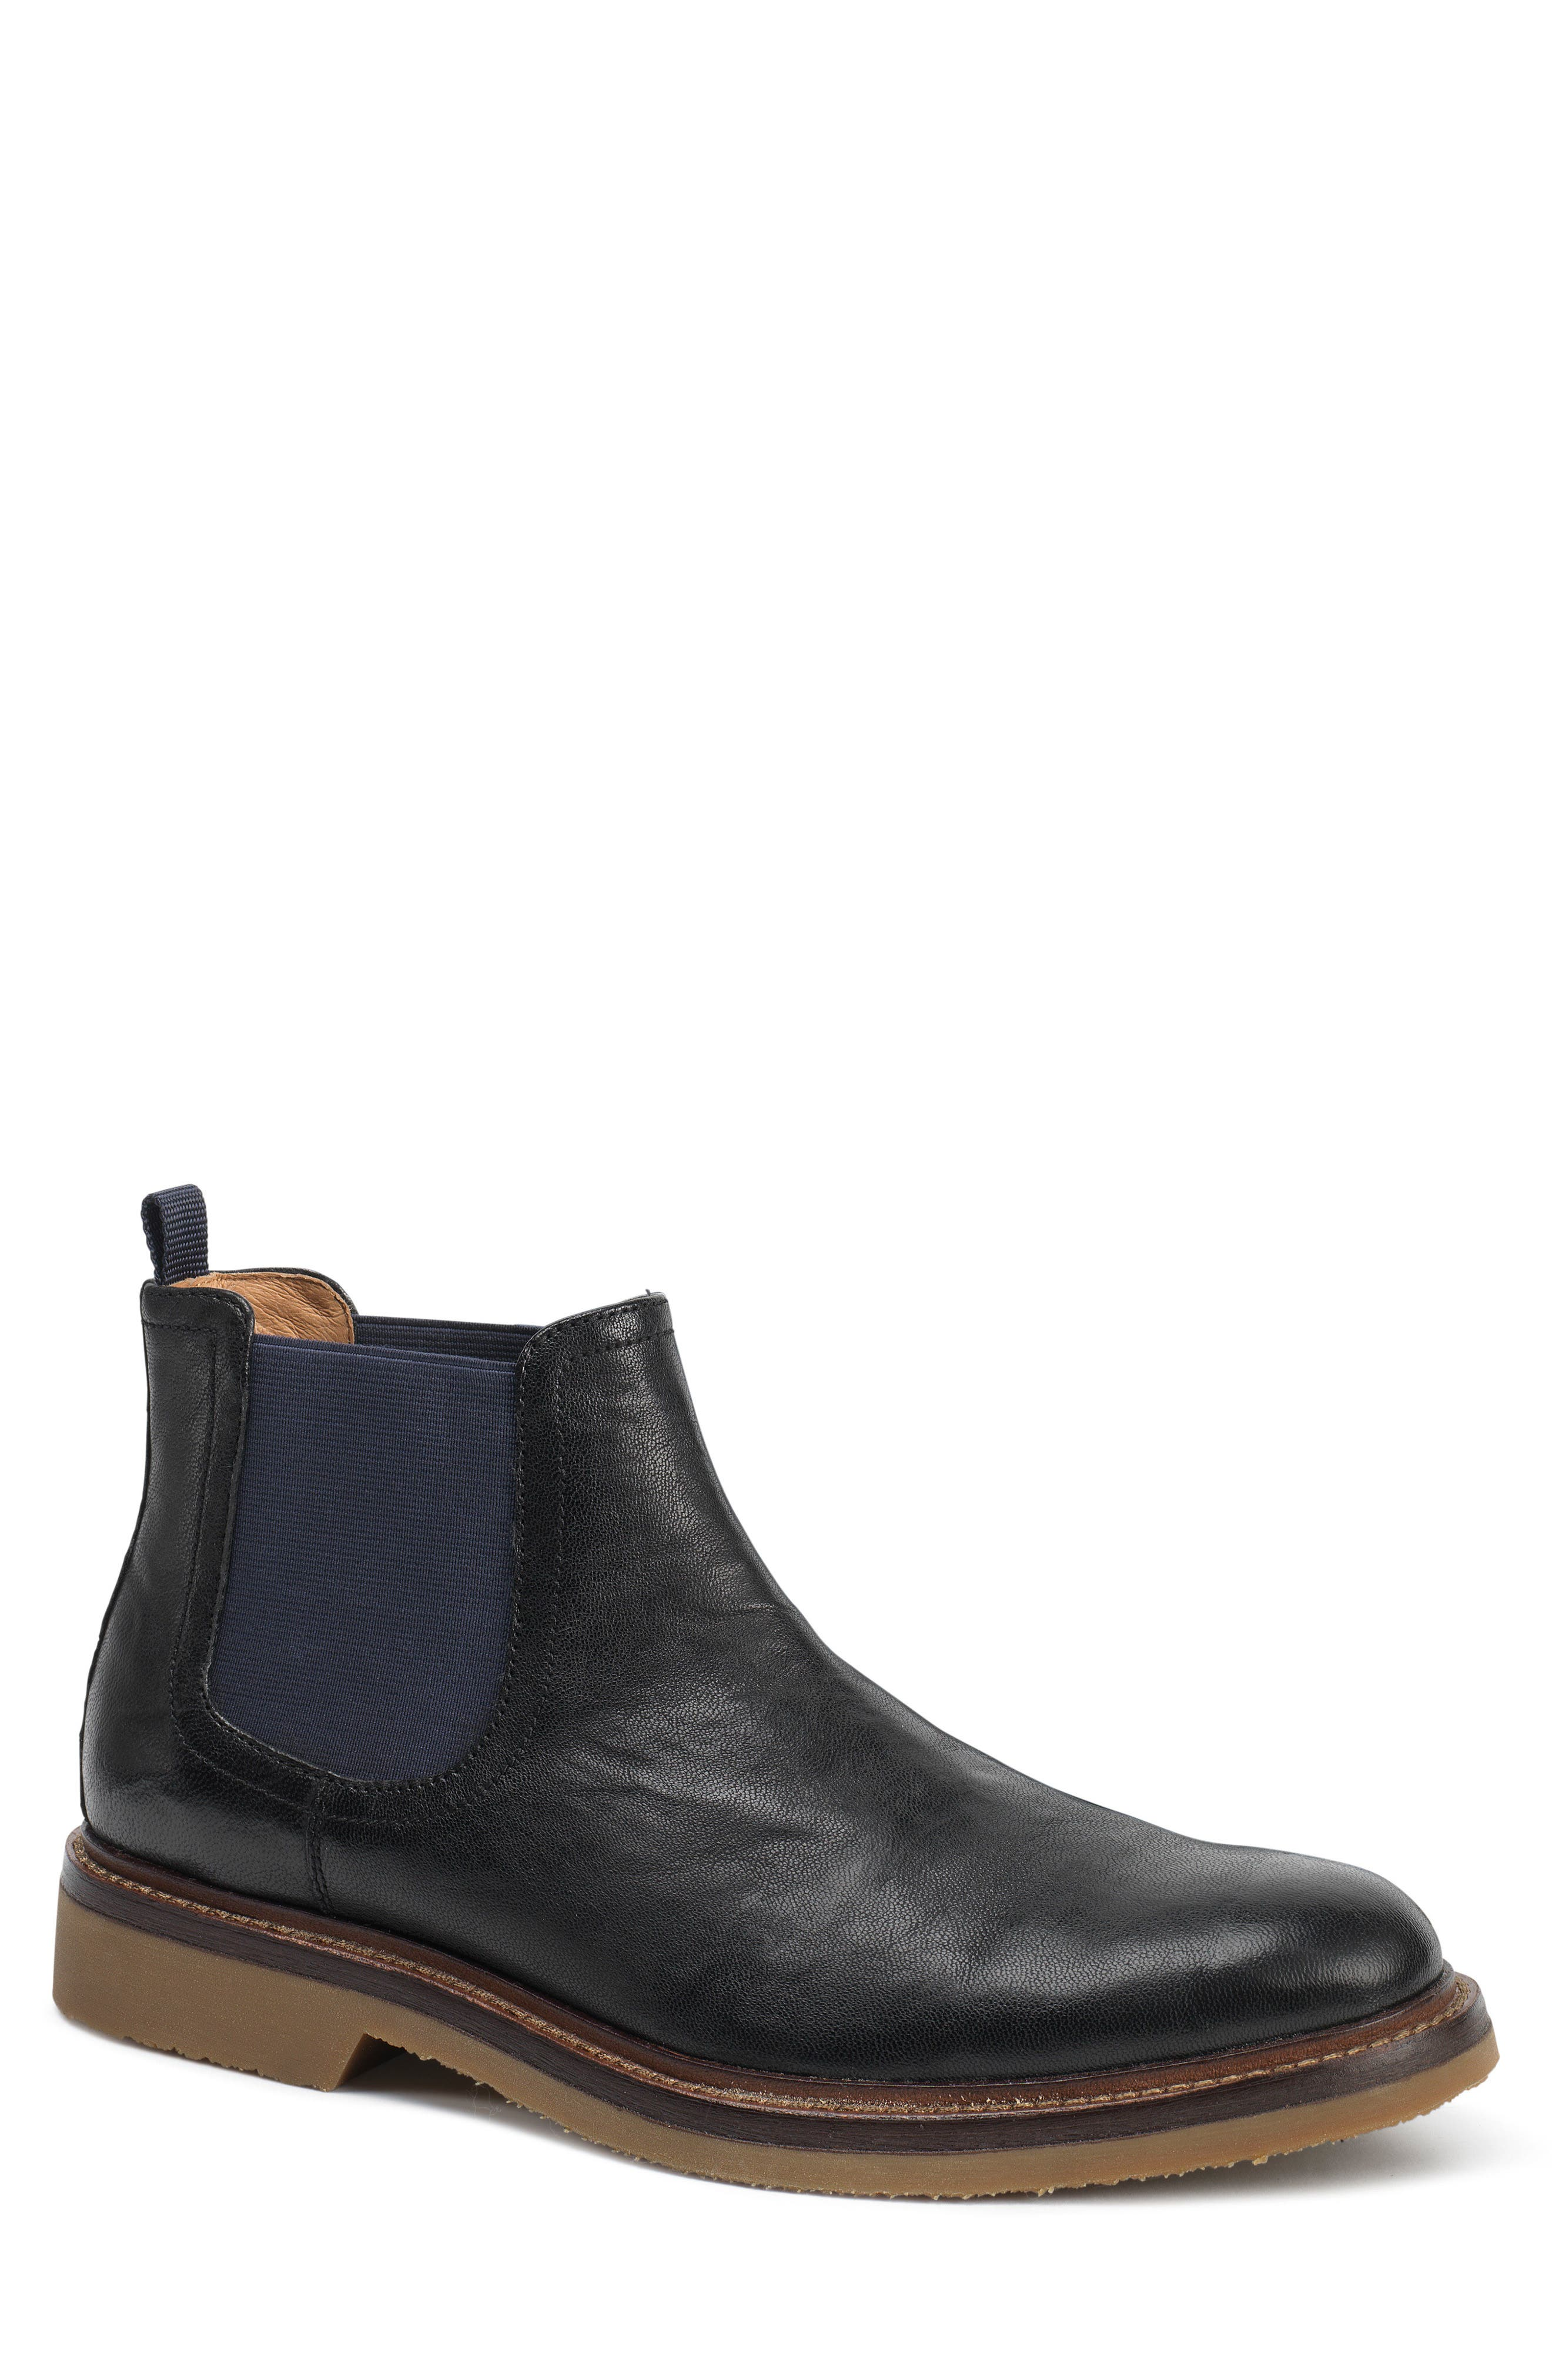 Carter Chelsea Boot,                         Main,                         color, 001